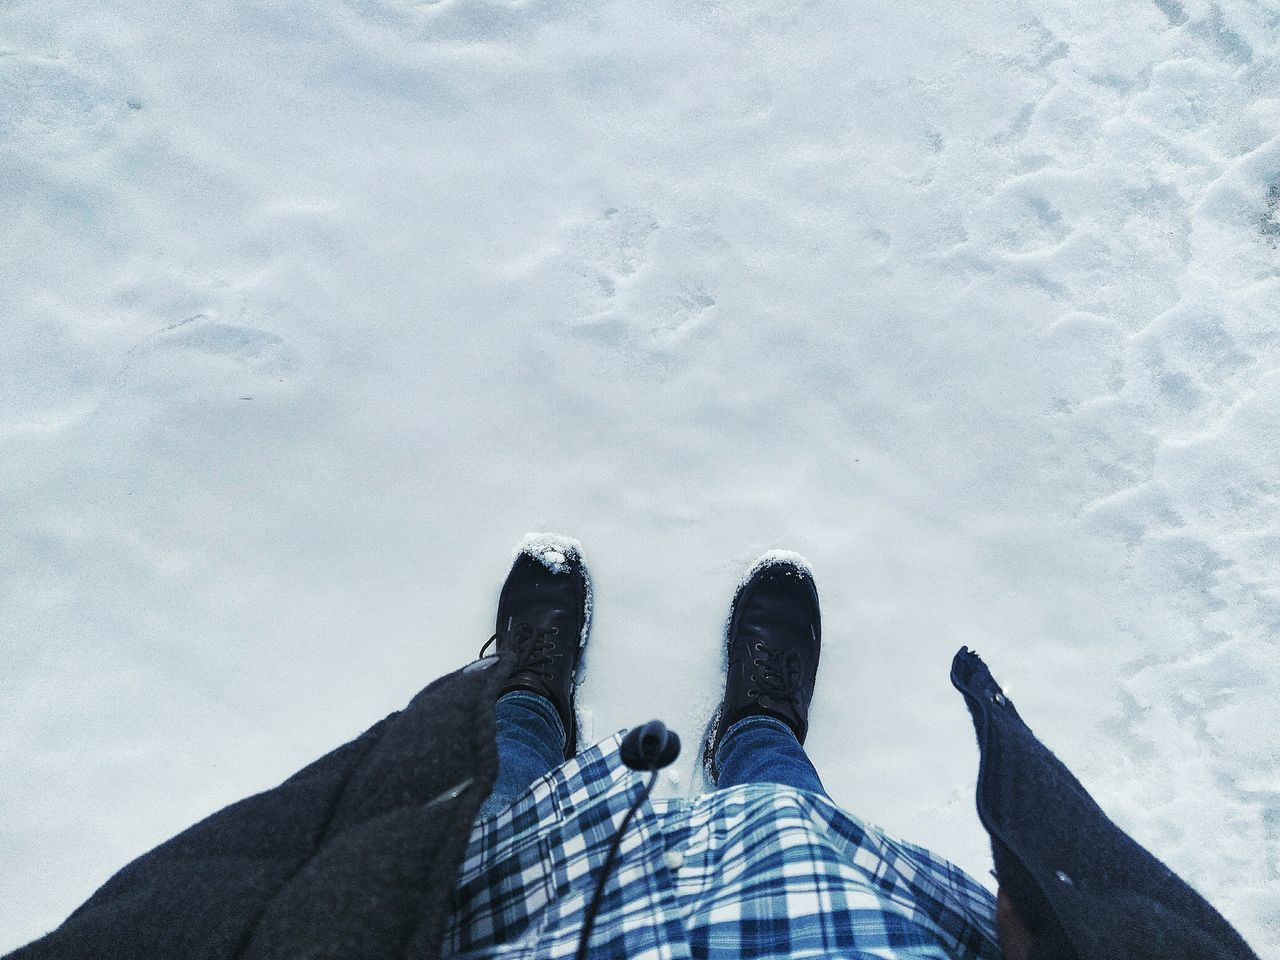 Shoe Human Leg Warm Clothing People Outdoors Close-up Day Leg Legs Shoes Snow Snow ❄ Spring Springtime EyeEm Nature Lover EyeEmNewHere Minimalistic